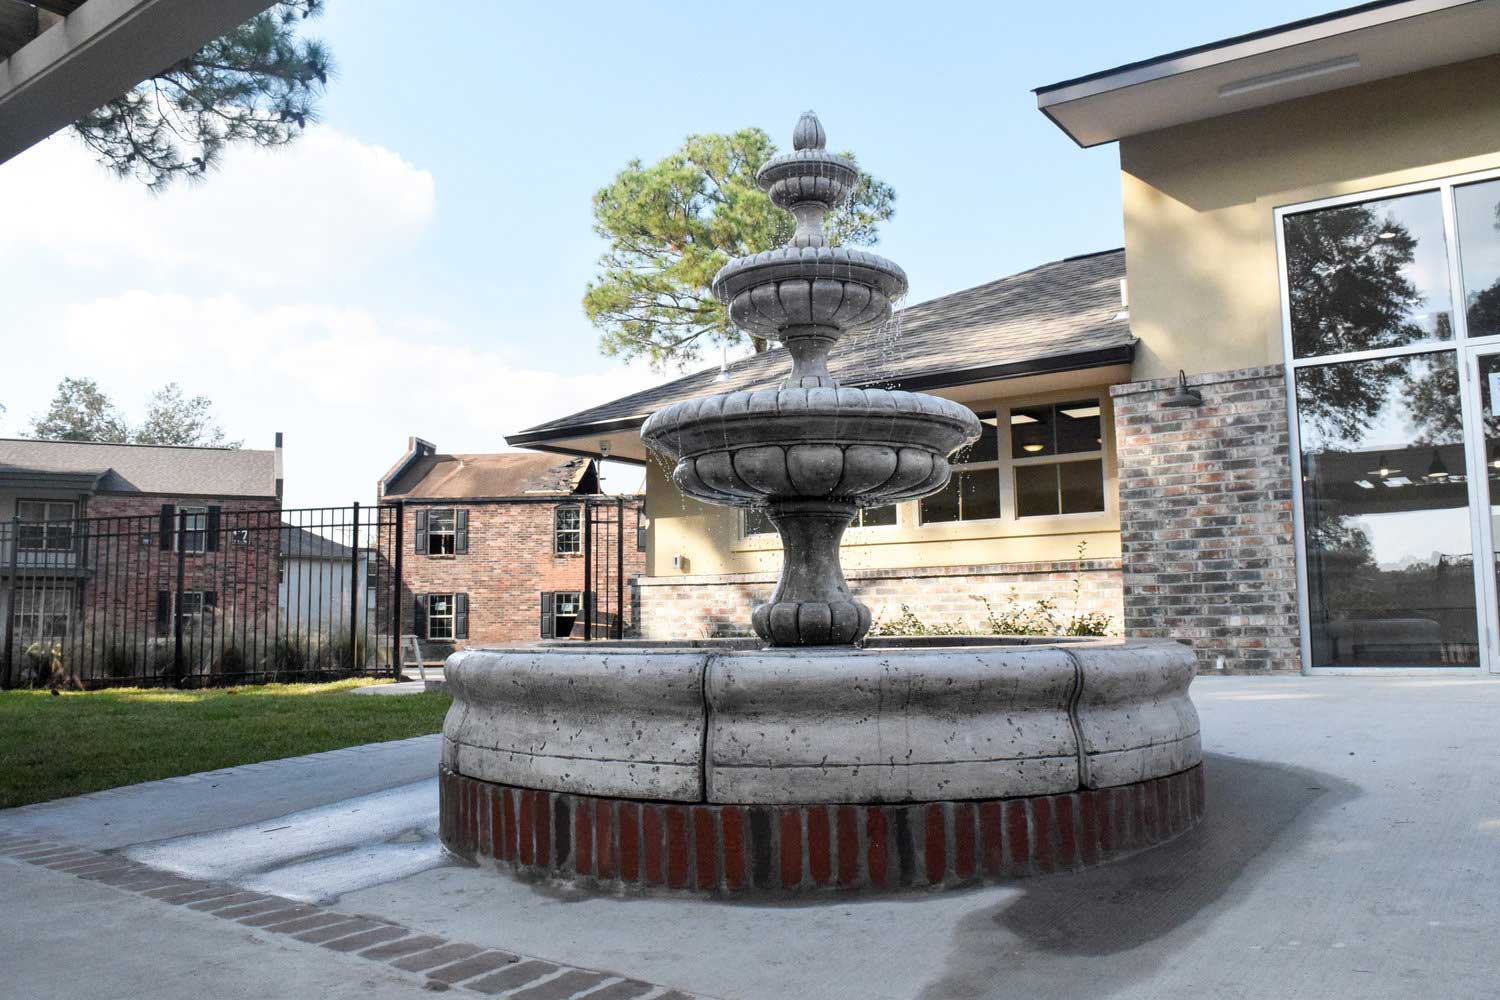 Serene Fountain at Ardendale Oaks Apartments in Baton Rouge, Louisiana